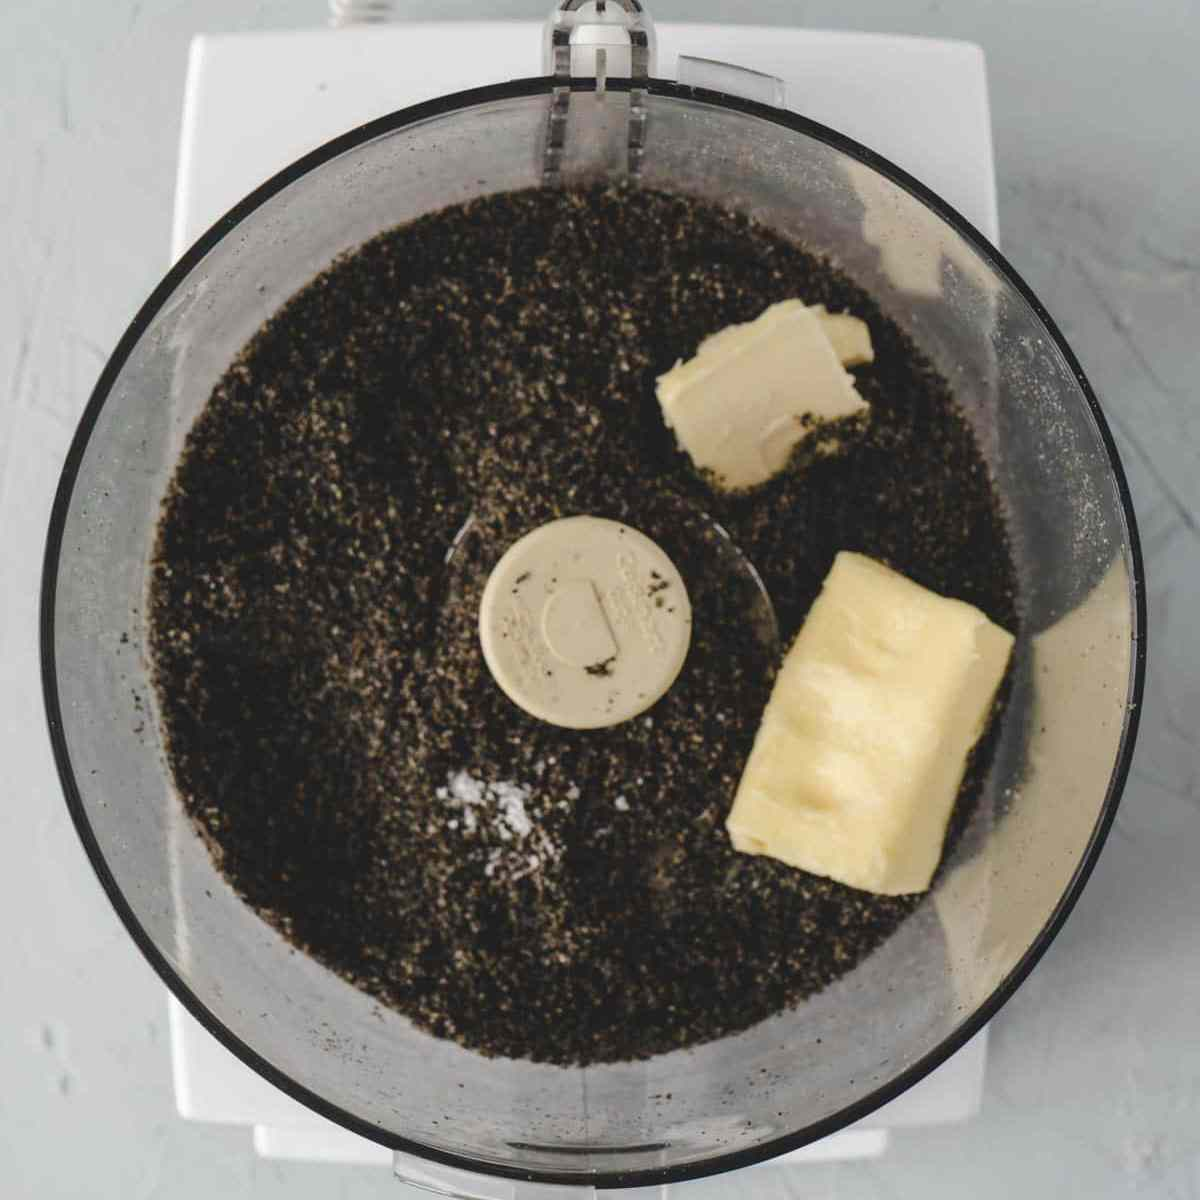 black sesame sugar mixture with a chunk of butter.